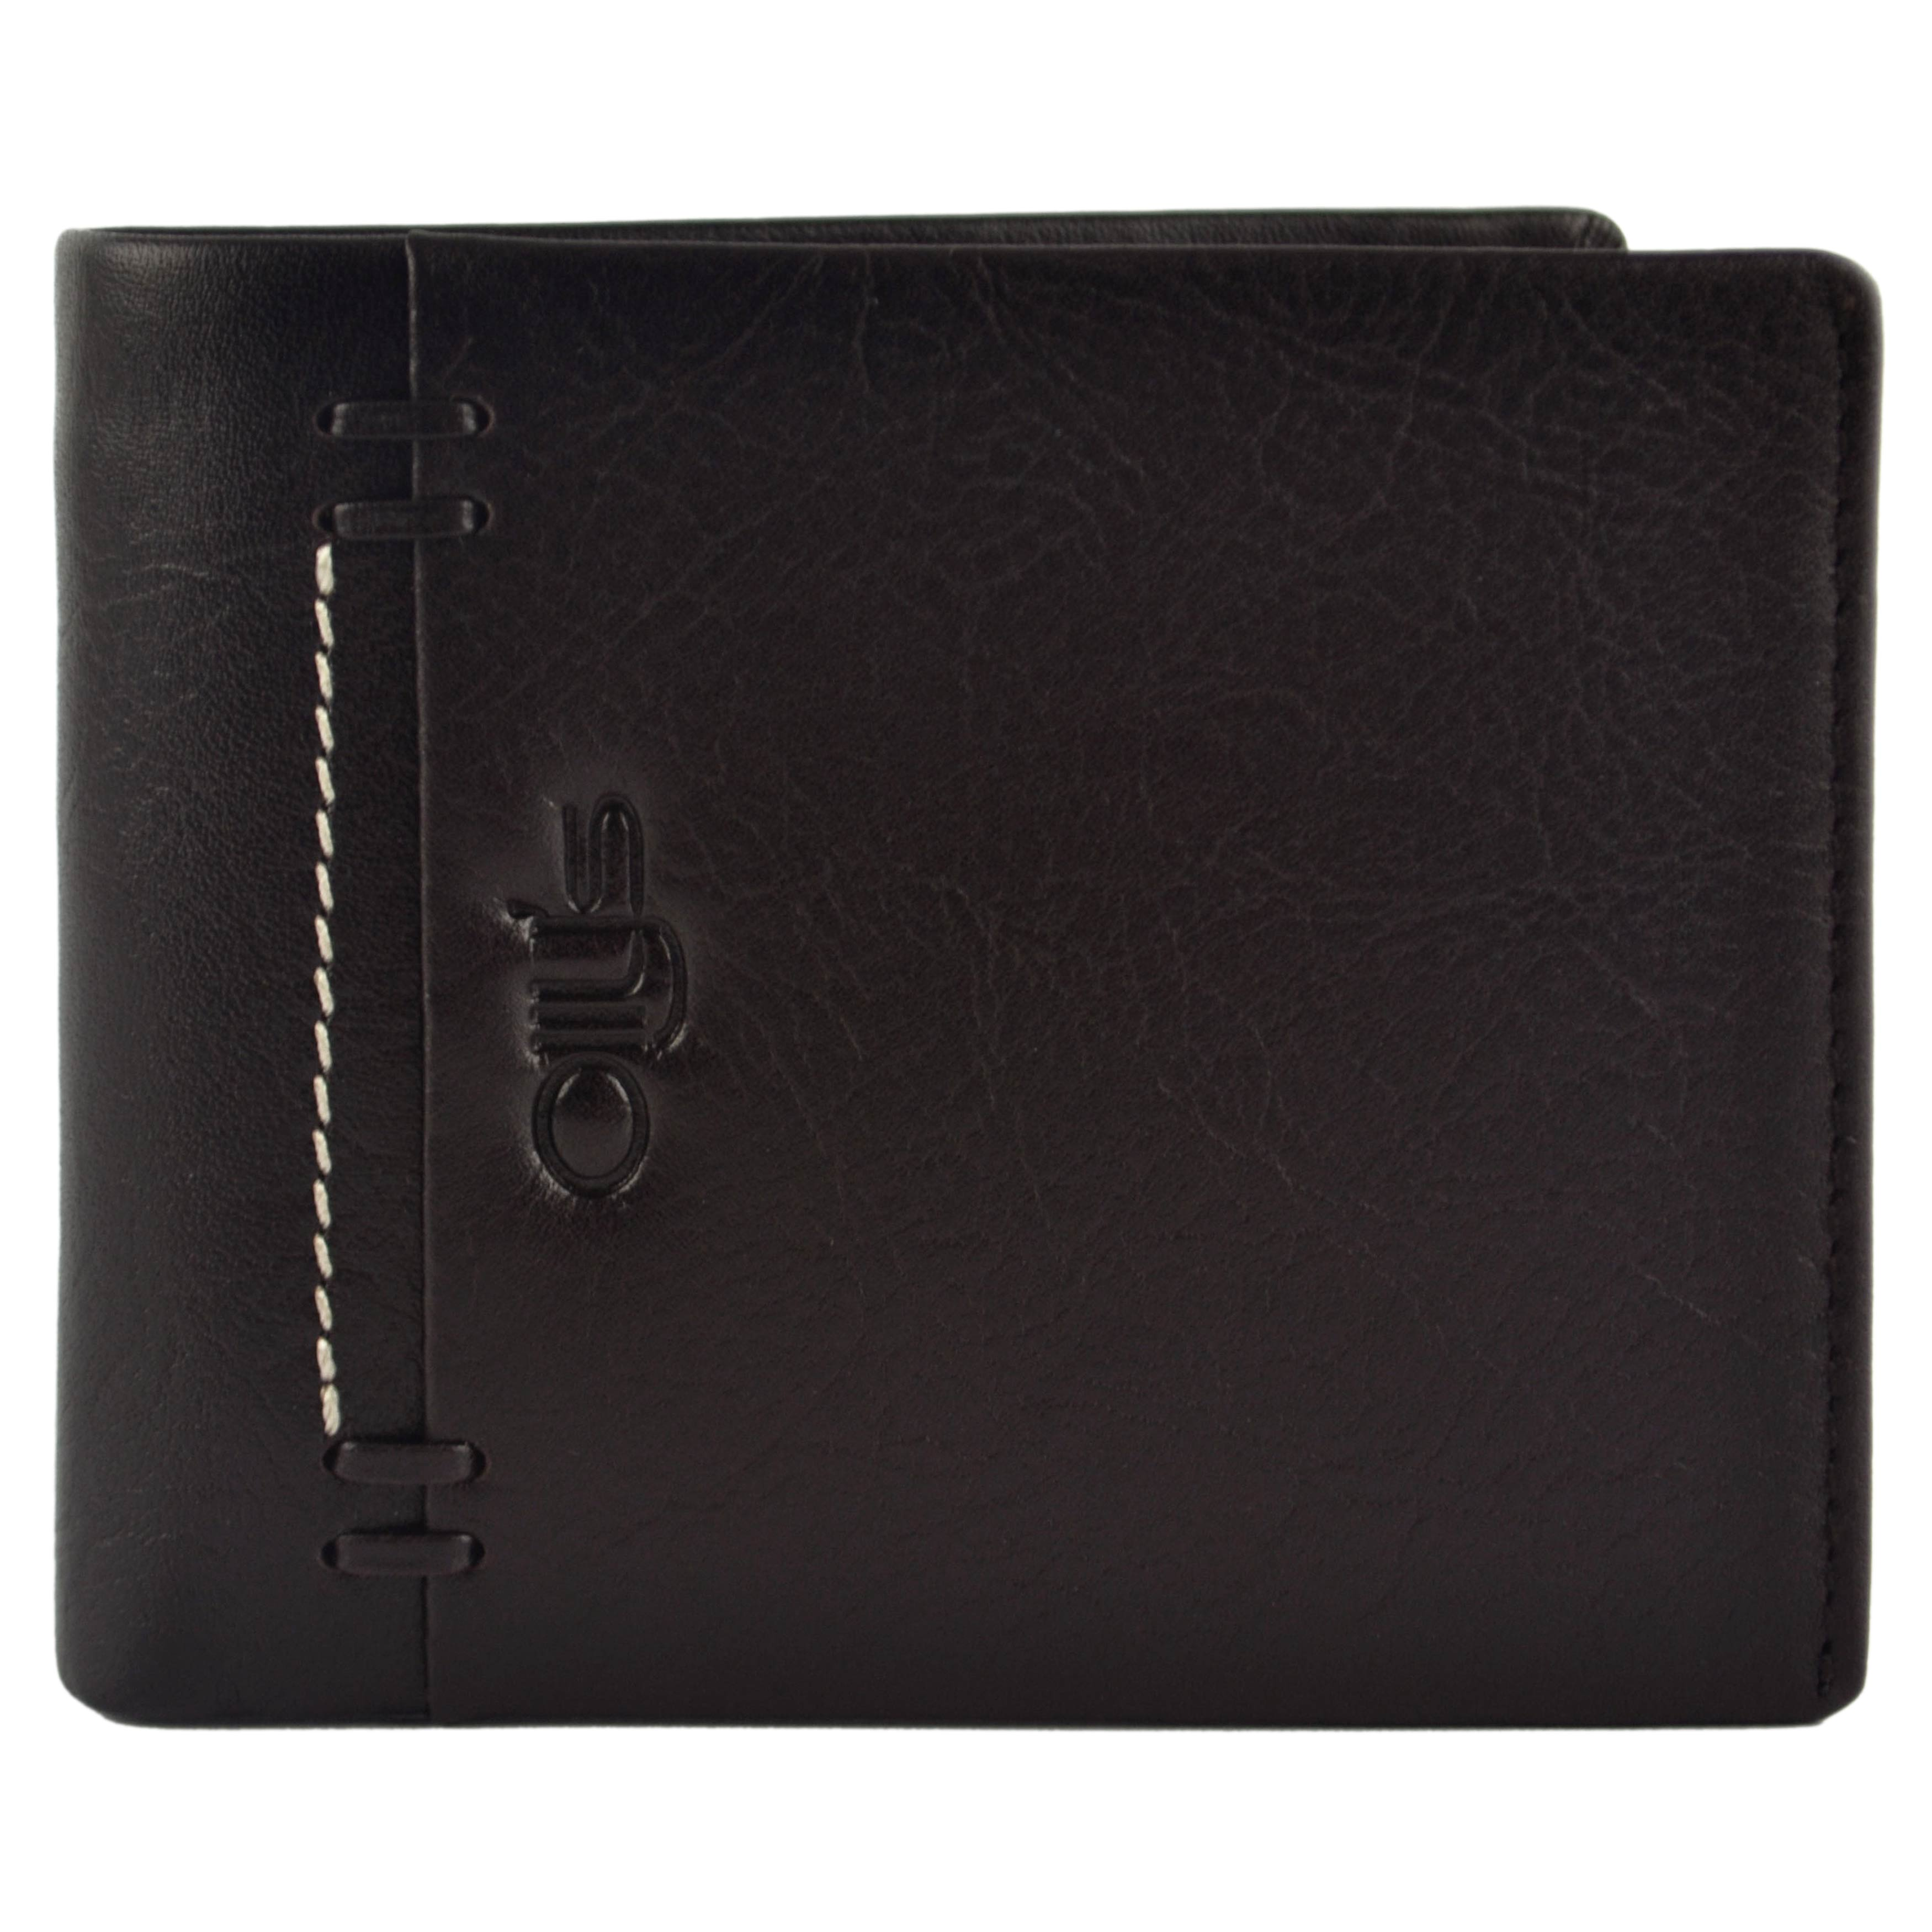 thumbnail 7 - Mens-Fine-Grain-Classic-LEATHER-Wallet-by-OLLY-039-s-Banks-Collection-Gift-Boxed